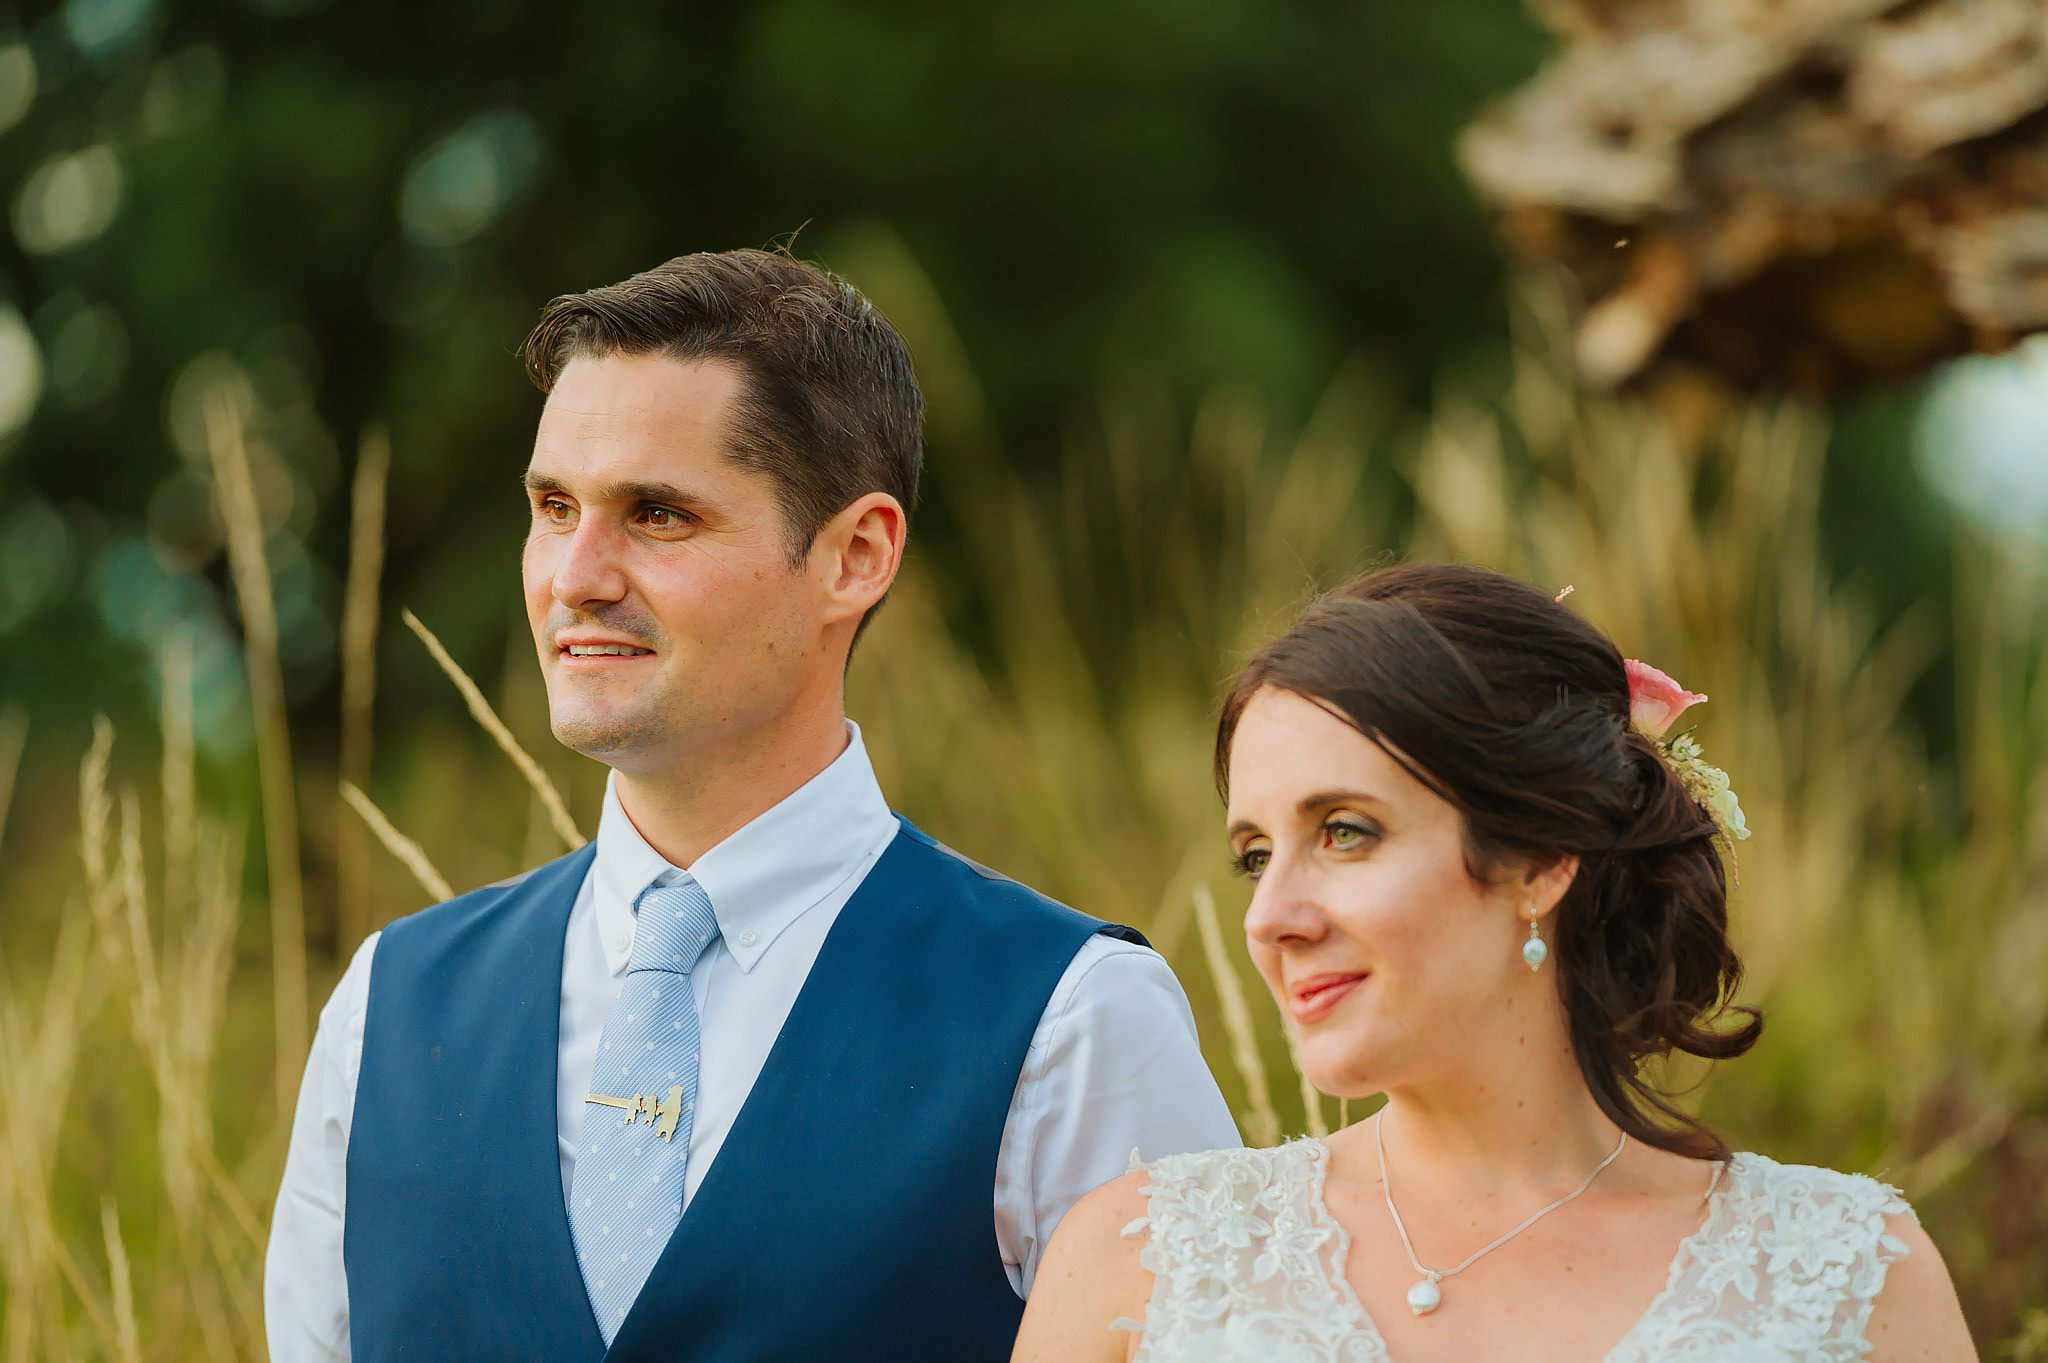 Wedding photography at Hellens Manor in Herefordshire, West Midlands | Shelley + Ian 128